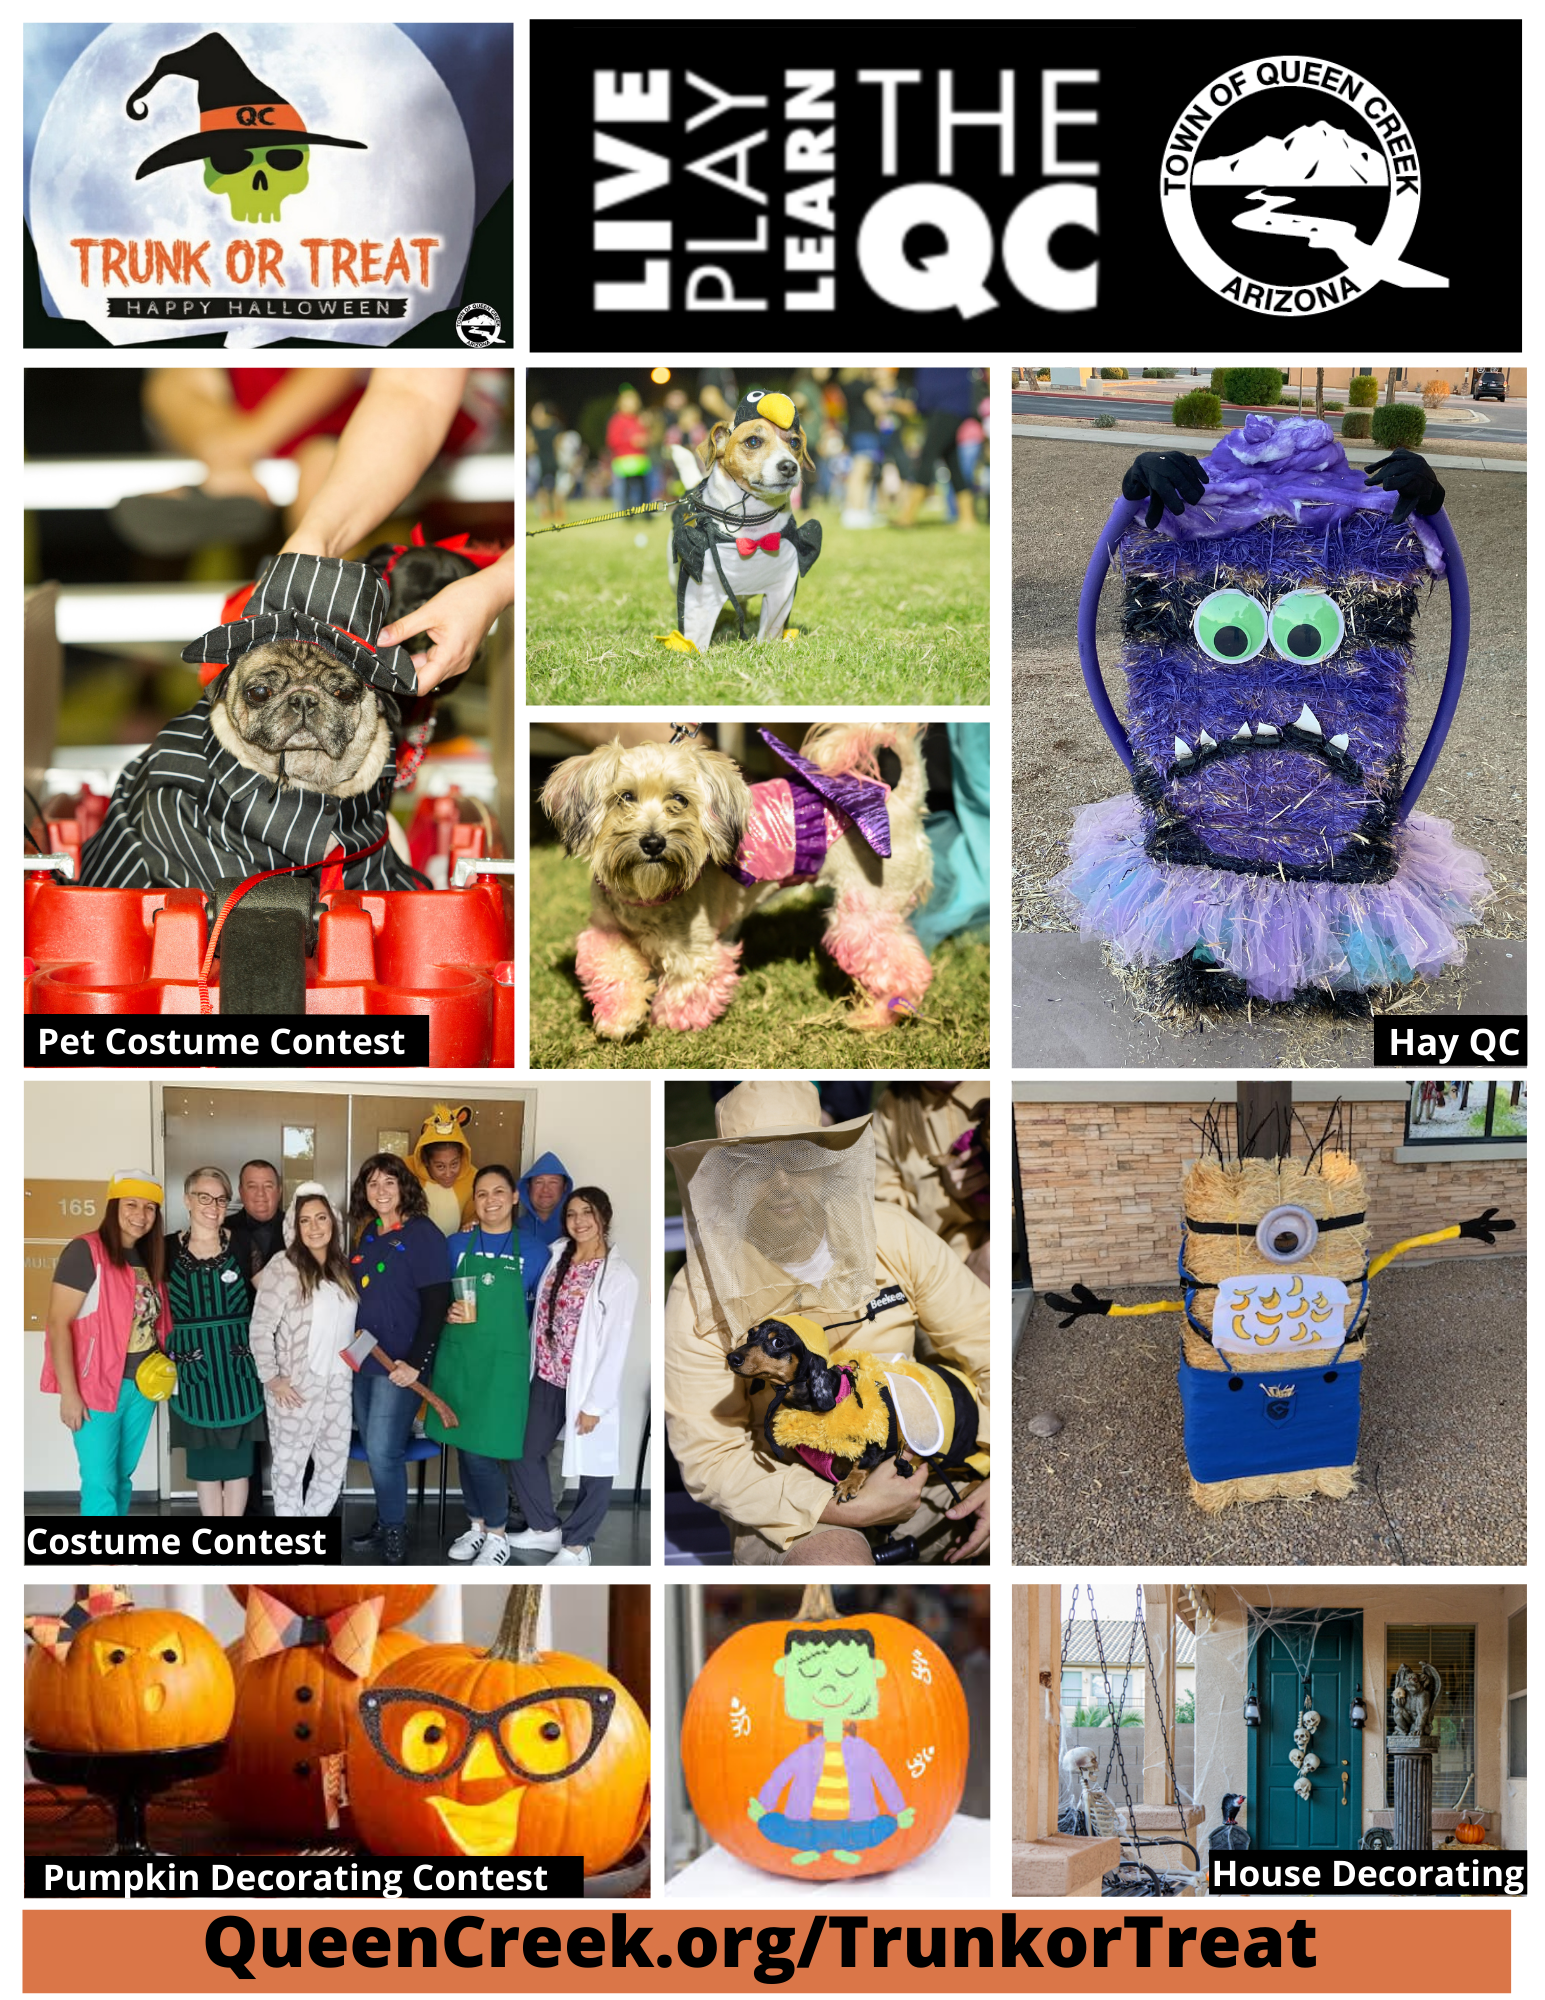 Halloween Costume Contest In The Qc Area 2020 Trunk or Treat 2020 | Queen Creek, AZ